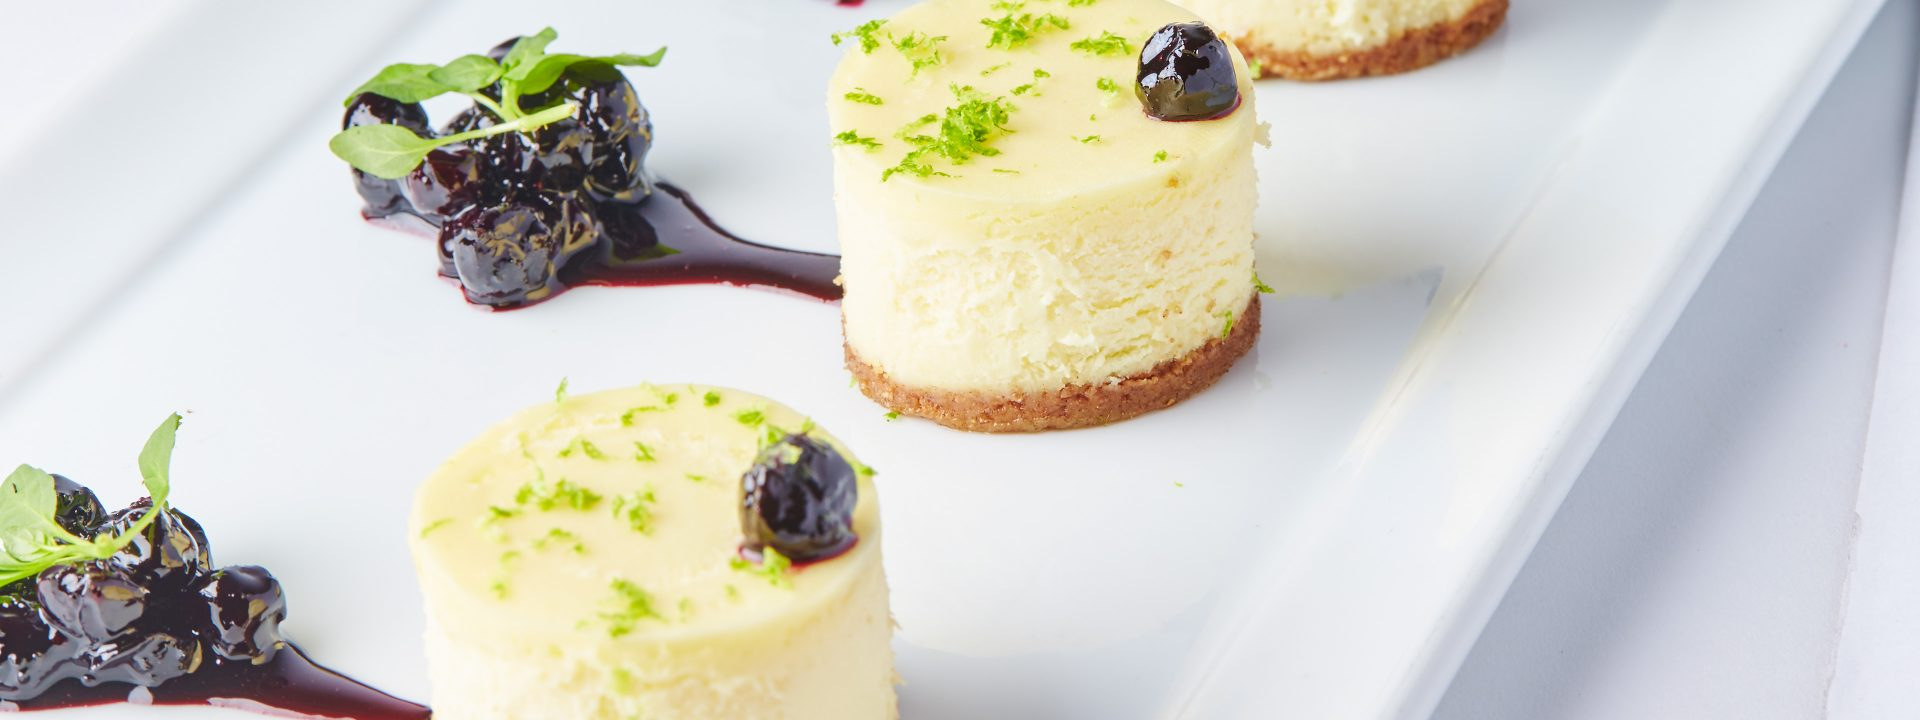 cheesecake blueberry compote